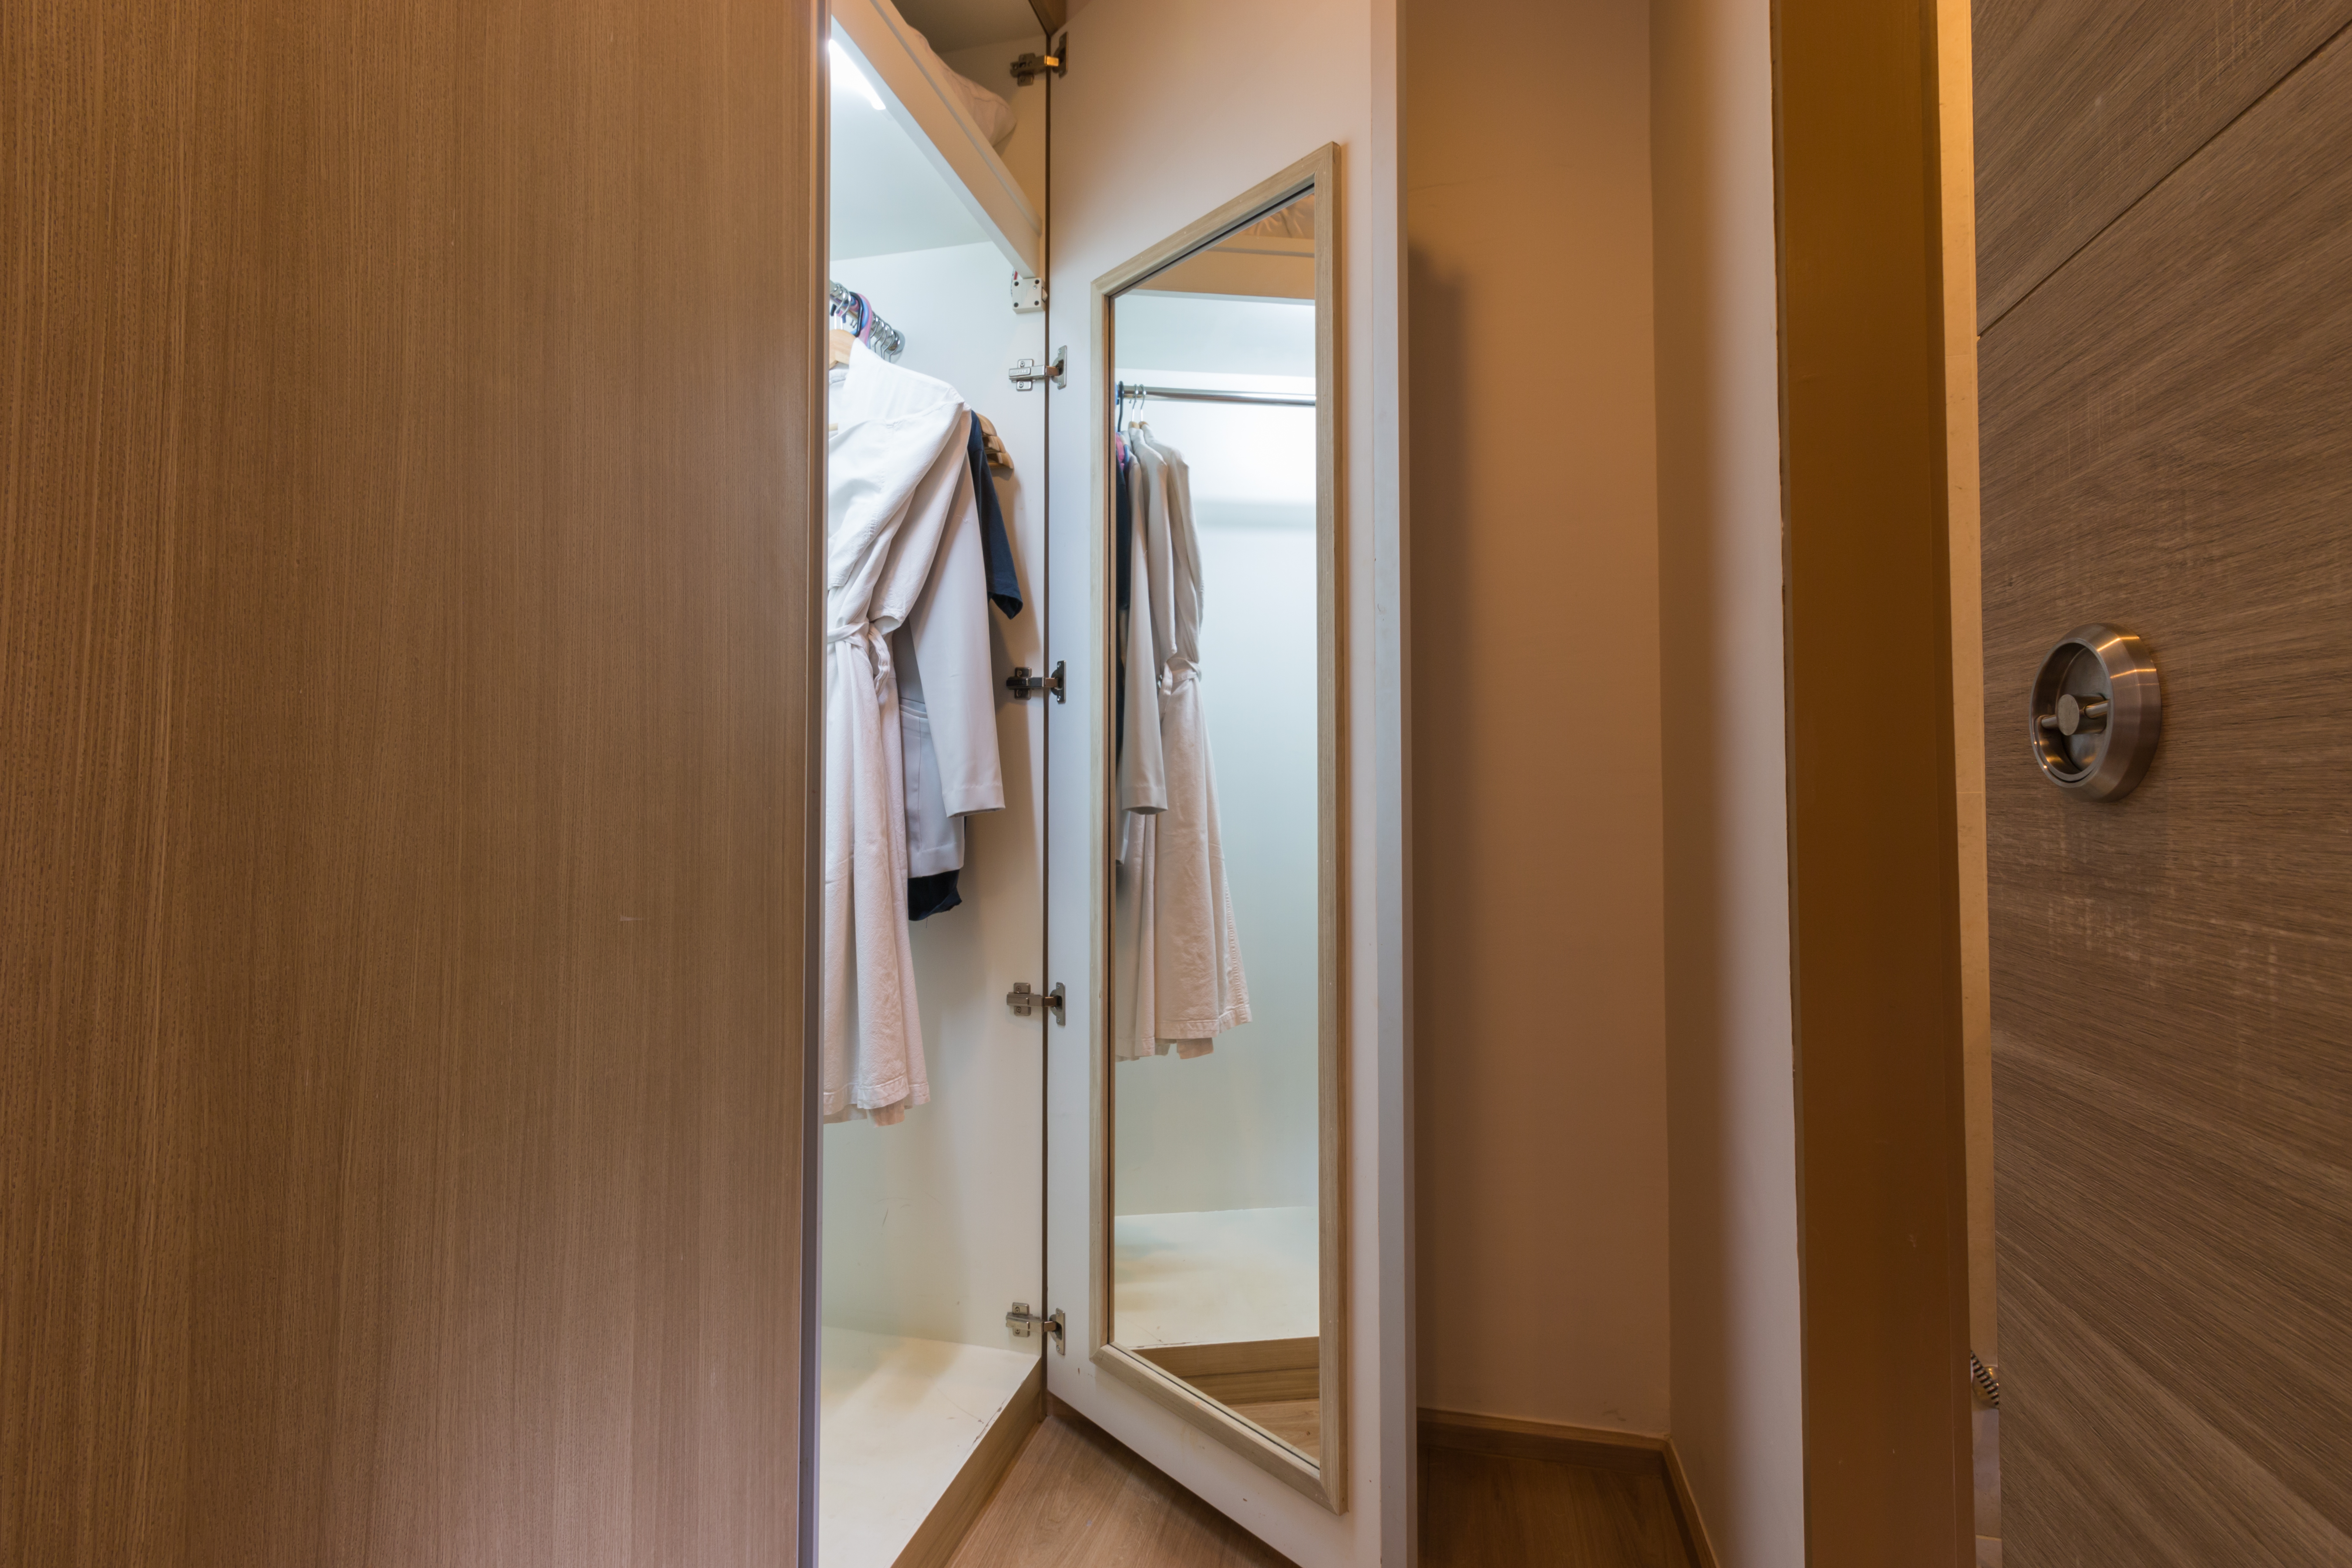 How to Adhere a Mirror on a Closet Door | Home Guides | SF Gate